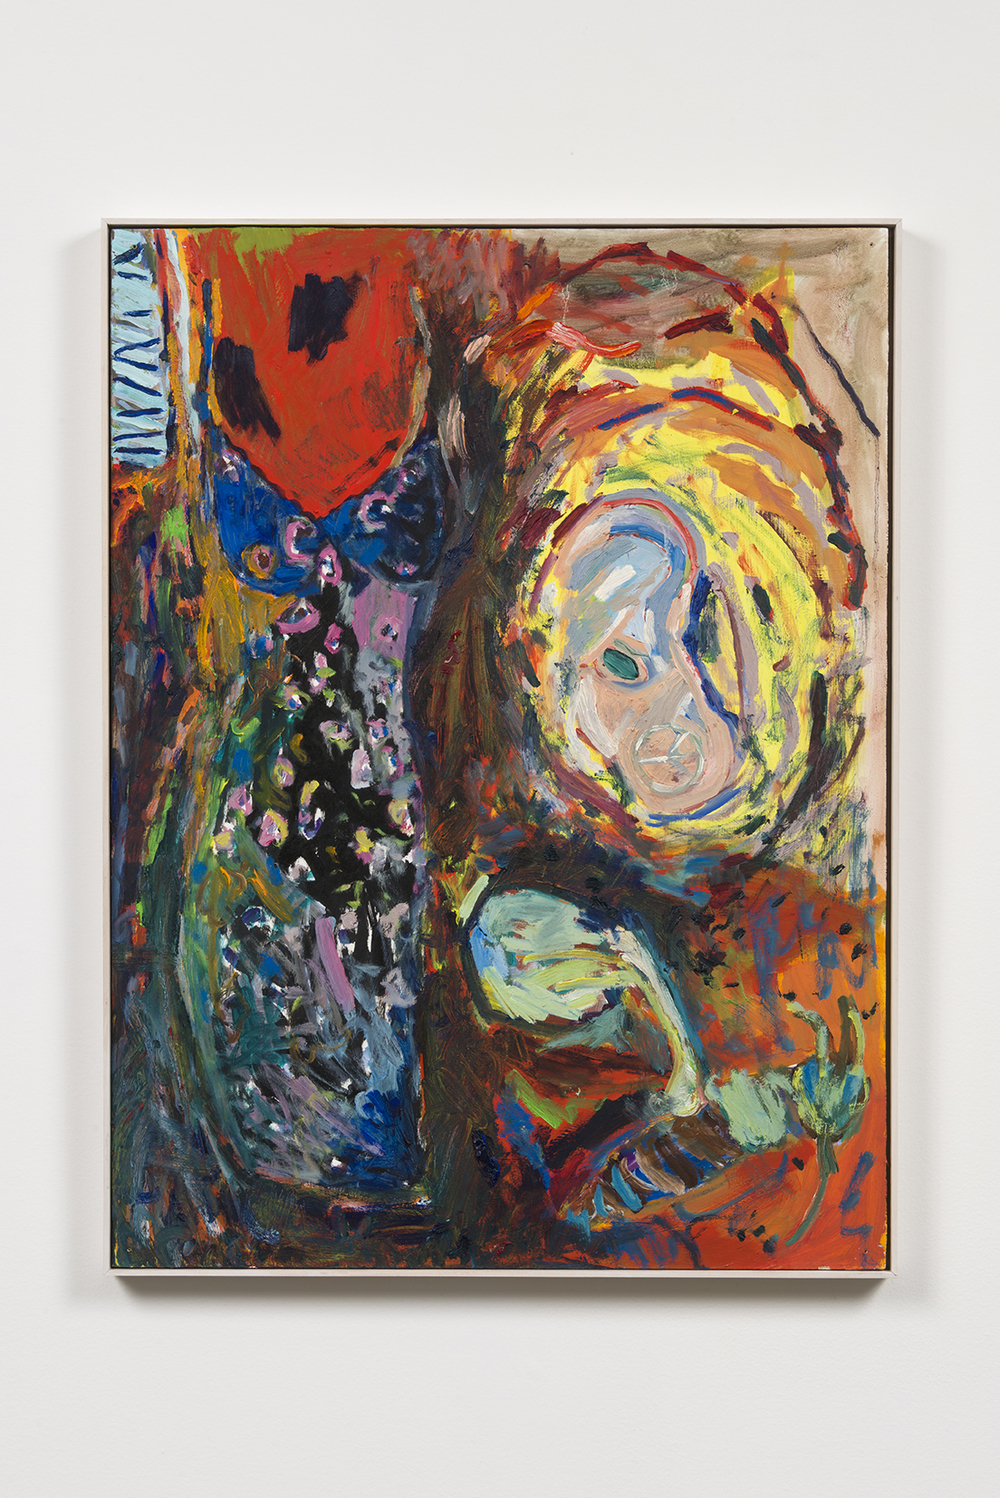 Adrianne Rubenstein - 90's Dress - 2015 - Oil on Panel - 32 1/2 x 24 1/2?